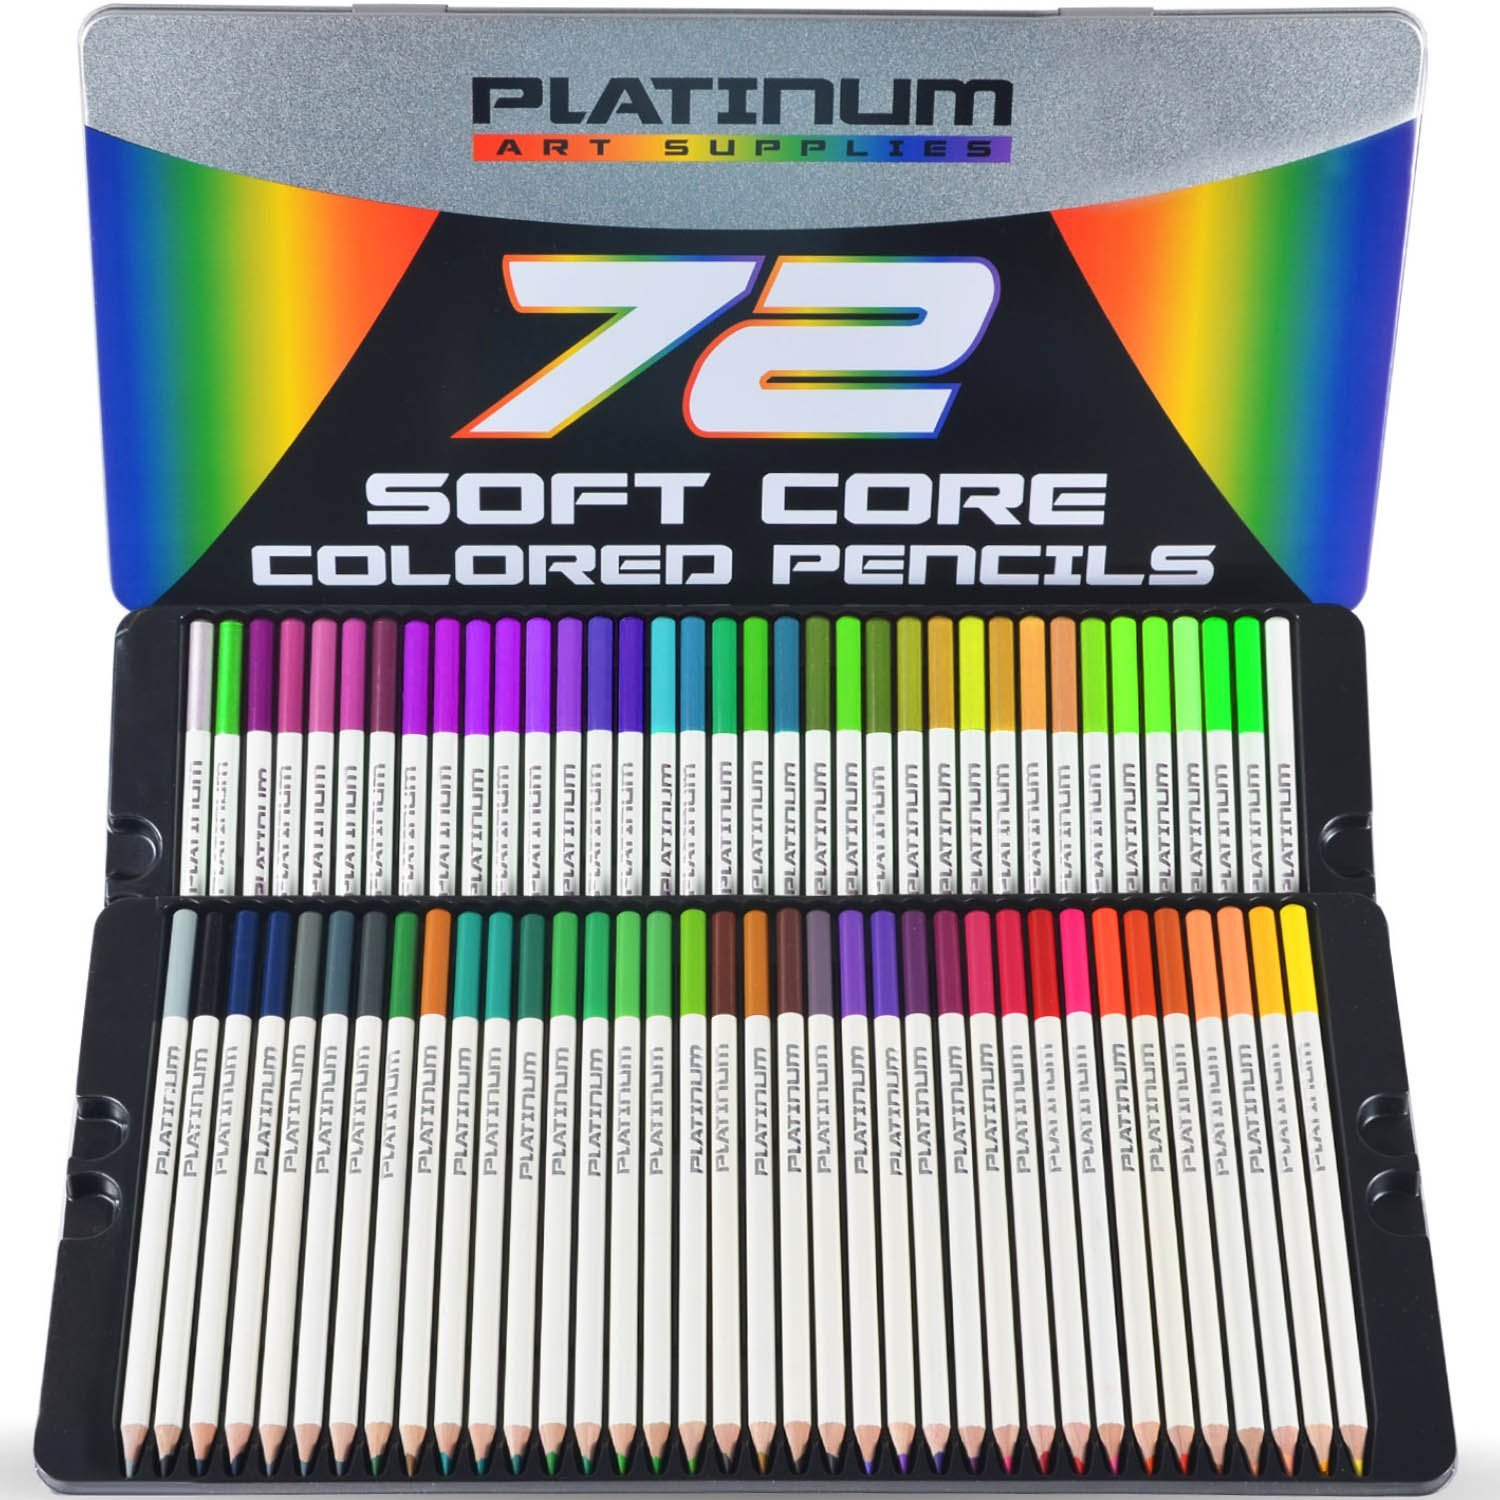 Amazon.com: Platinum Soft Core Colored Pencils with Tin Case, Pack of 72